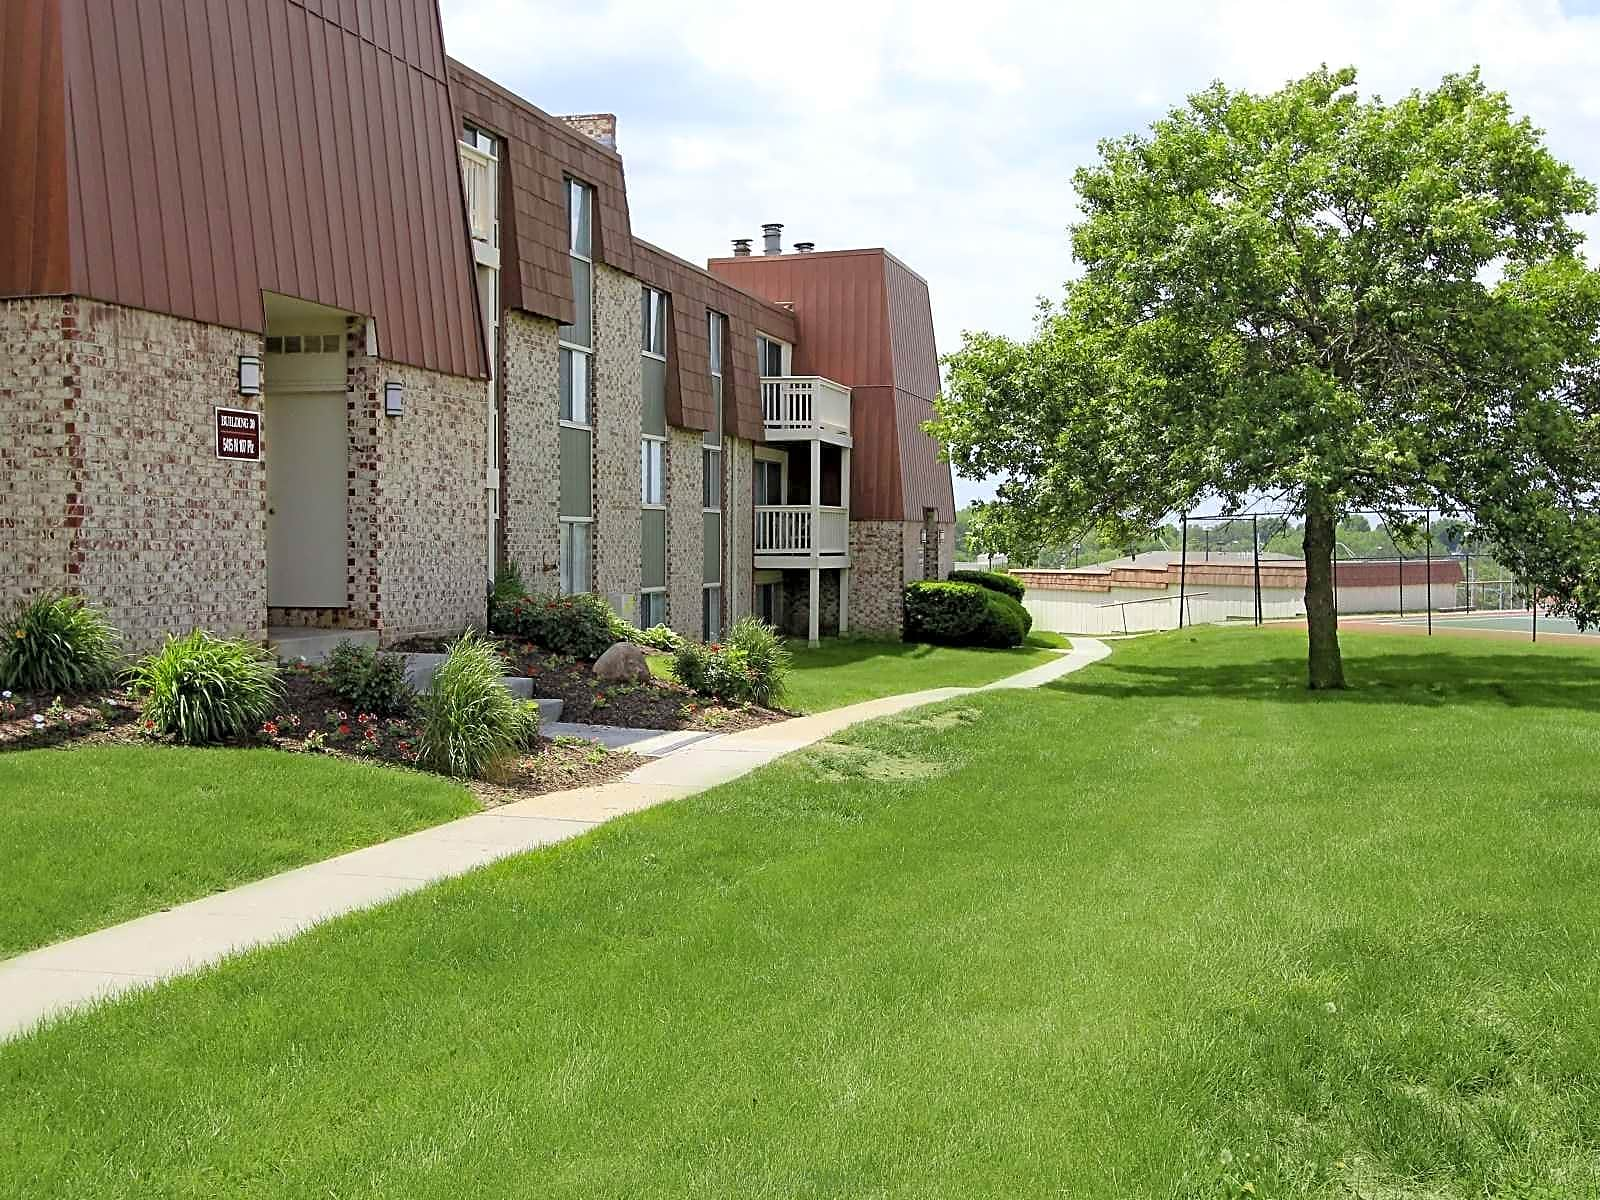 Photo: Omaha Apartment for Rent - $585.00 / month; 1 Bd & 1 Ba